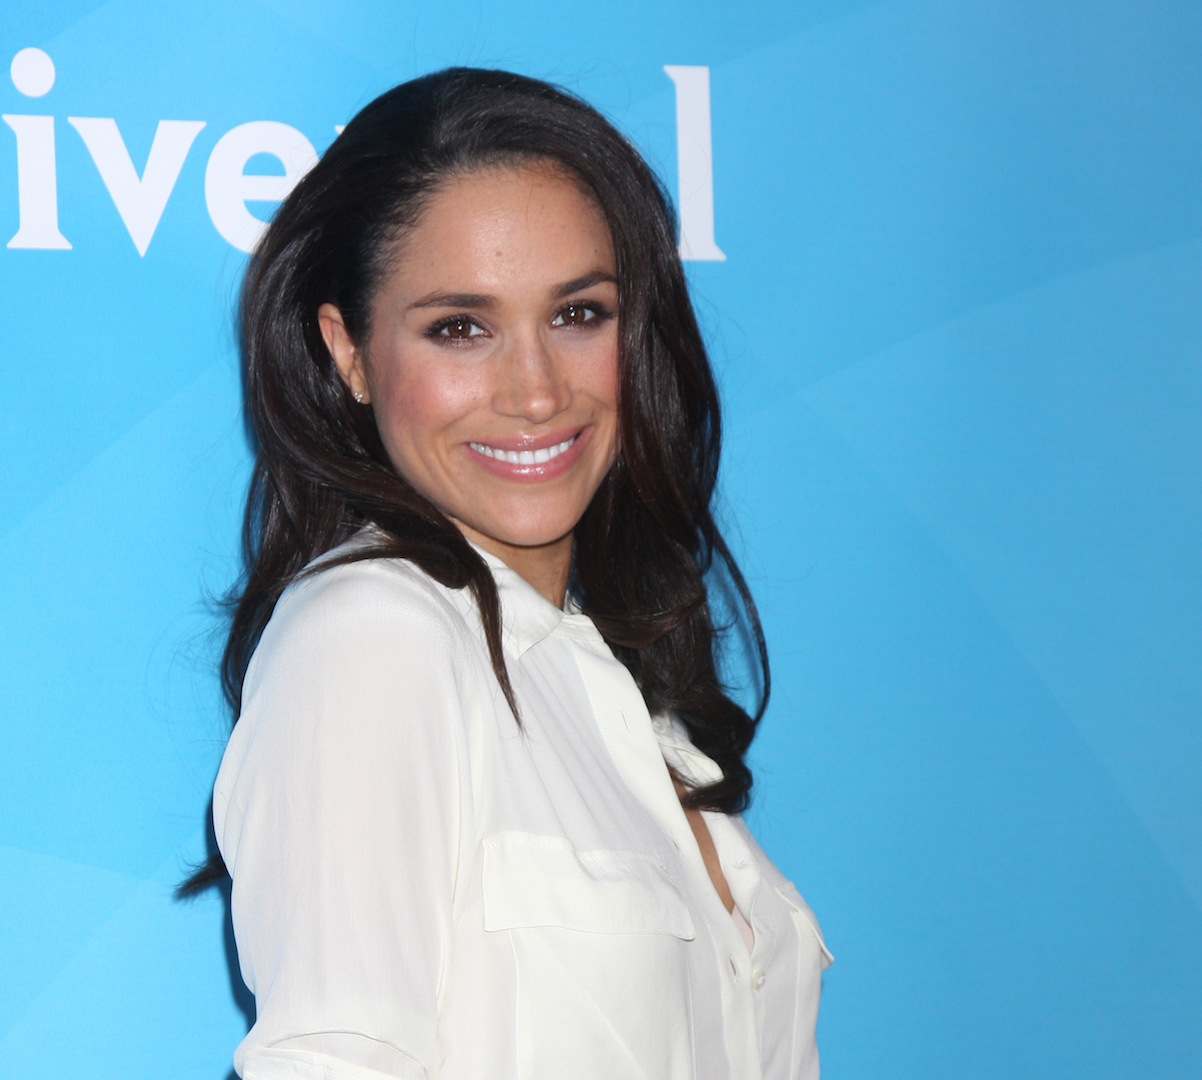 Meghan Markle on Red Carpet White Blouse Blue Background